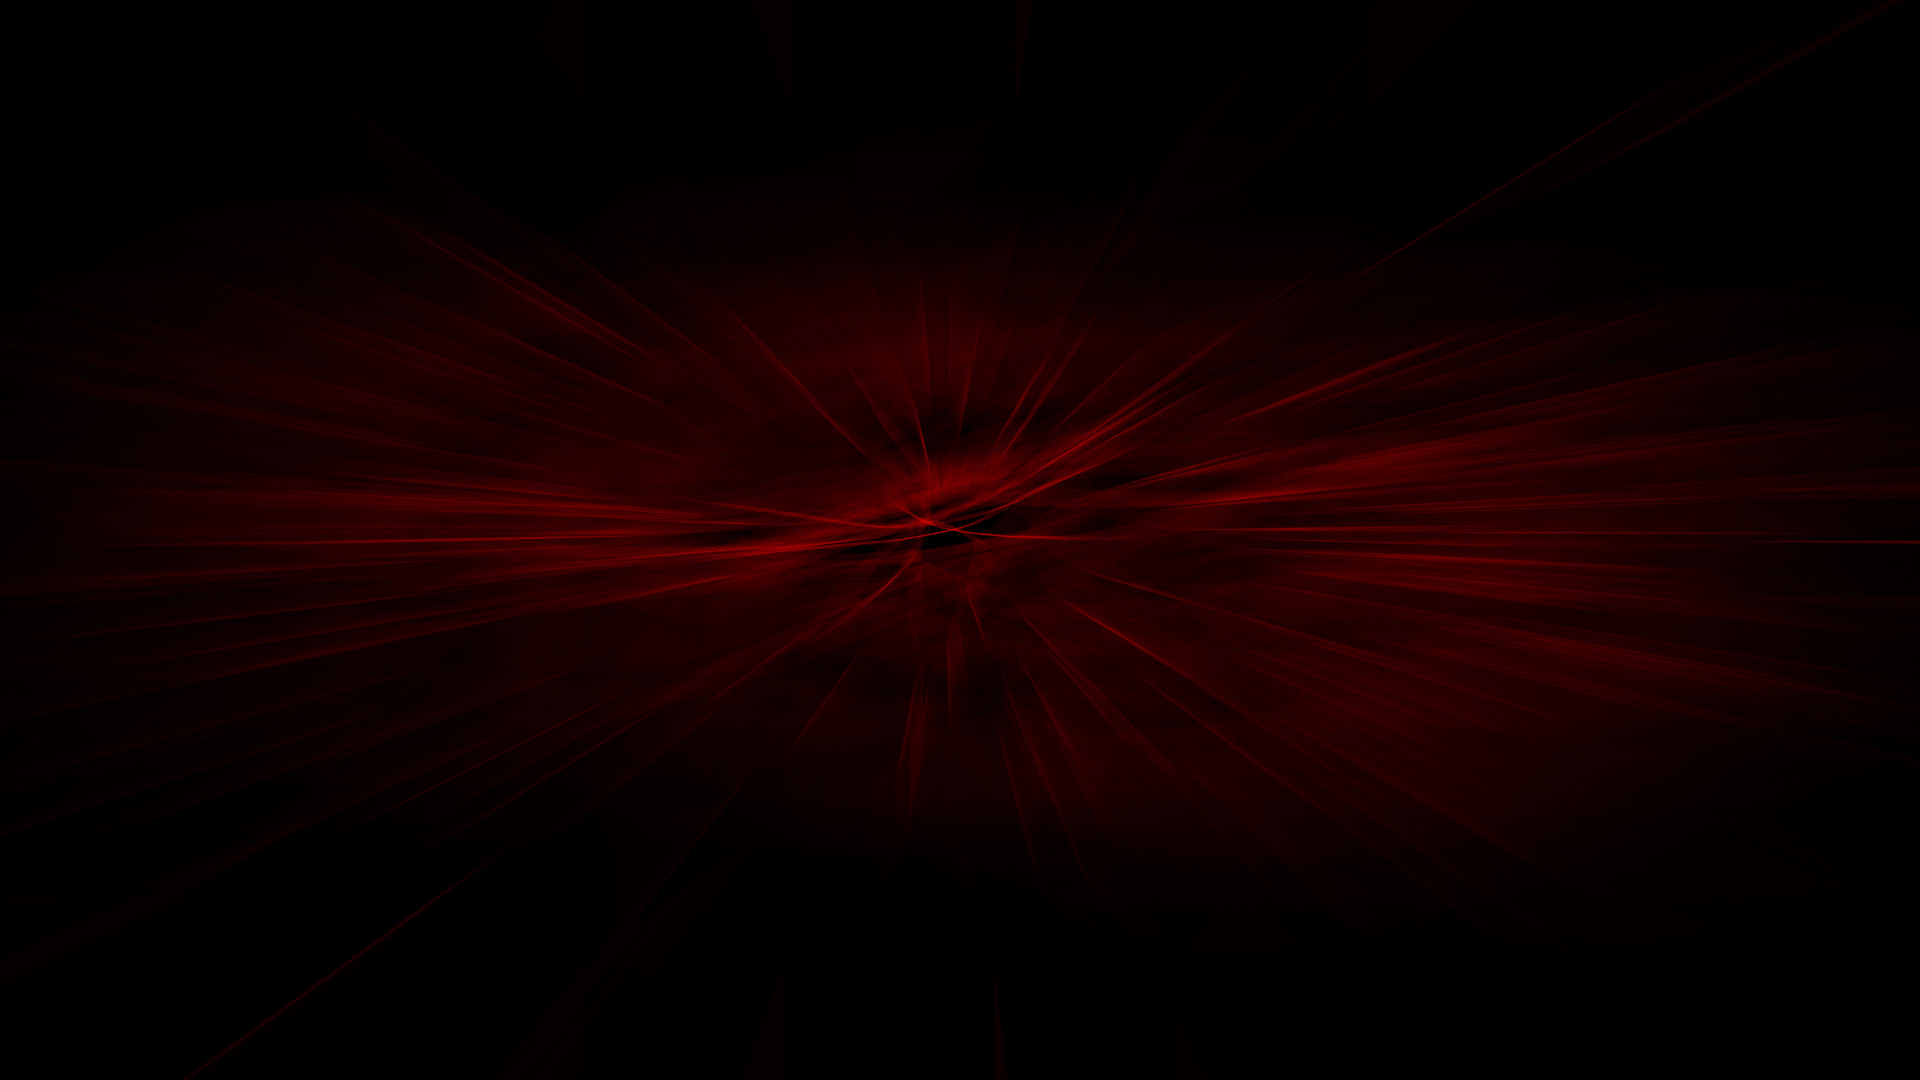 Cool black and red wallpapers wallpapertag - Cool red and black wallpapers ...